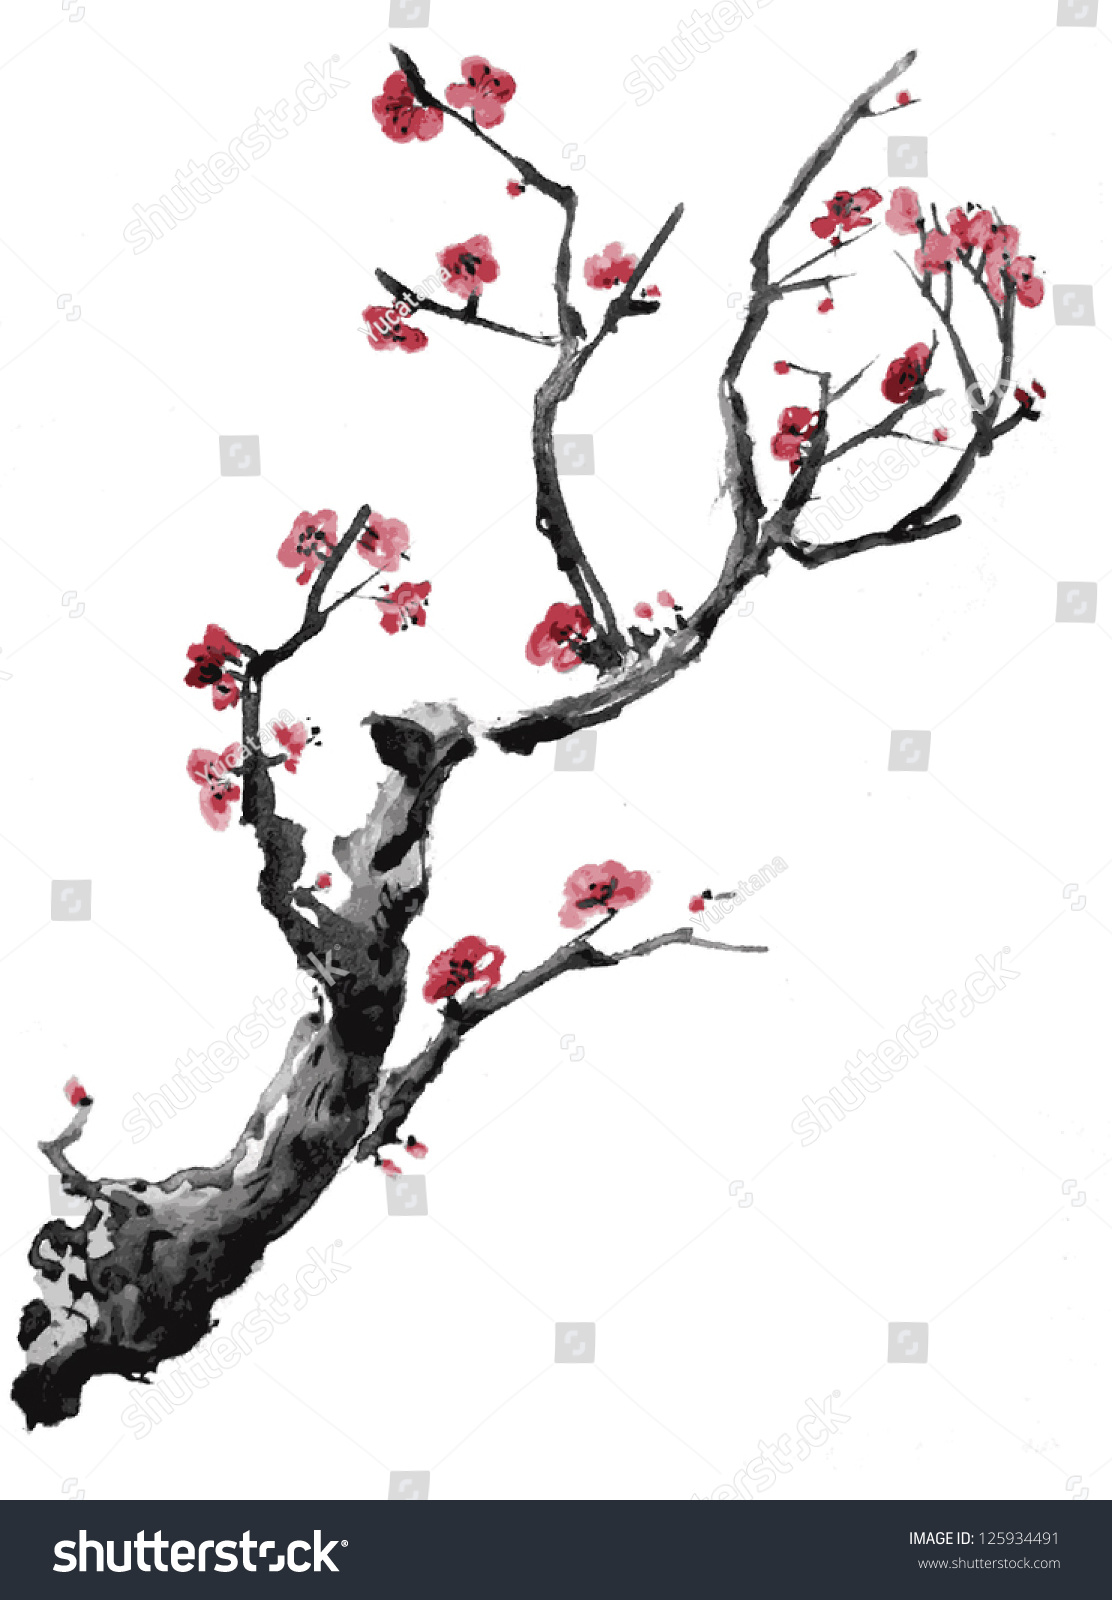 how to draw a realistic cherry blossom tree